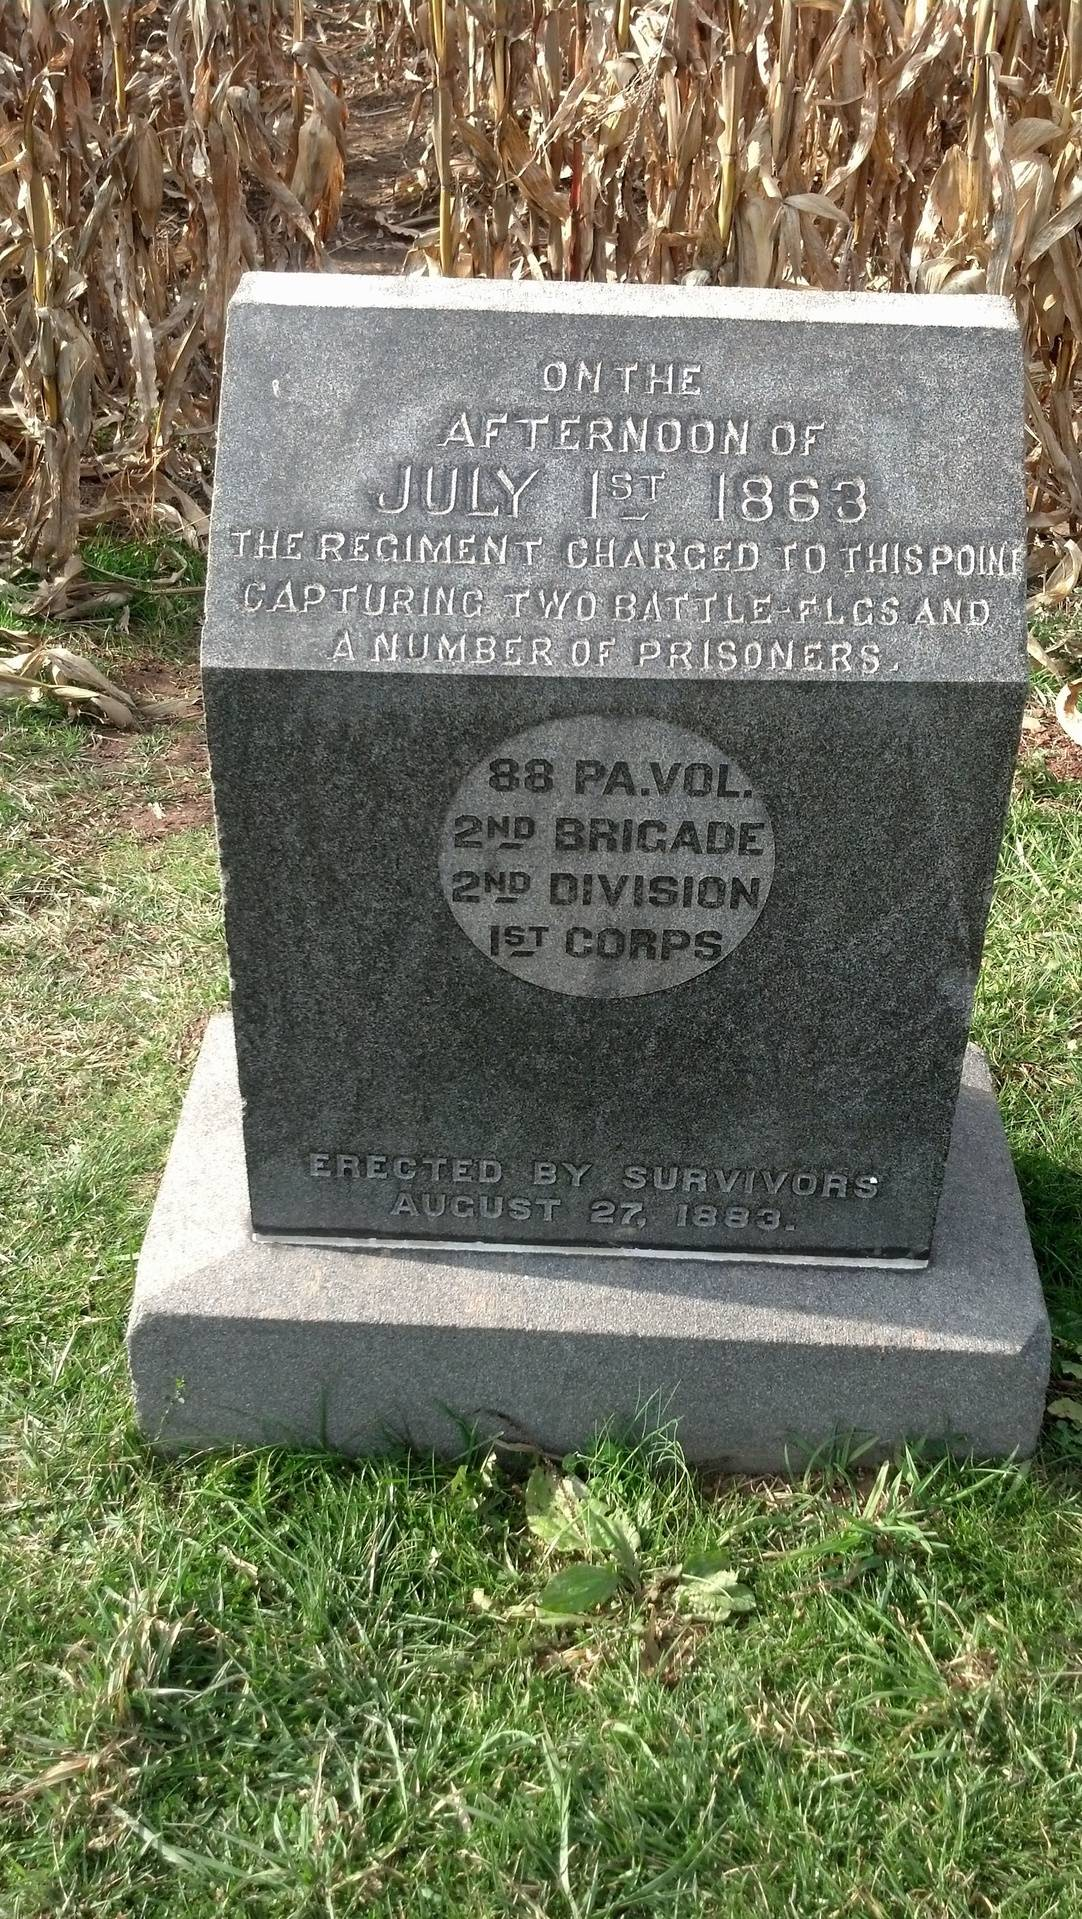 Marker for Iverson's Pit